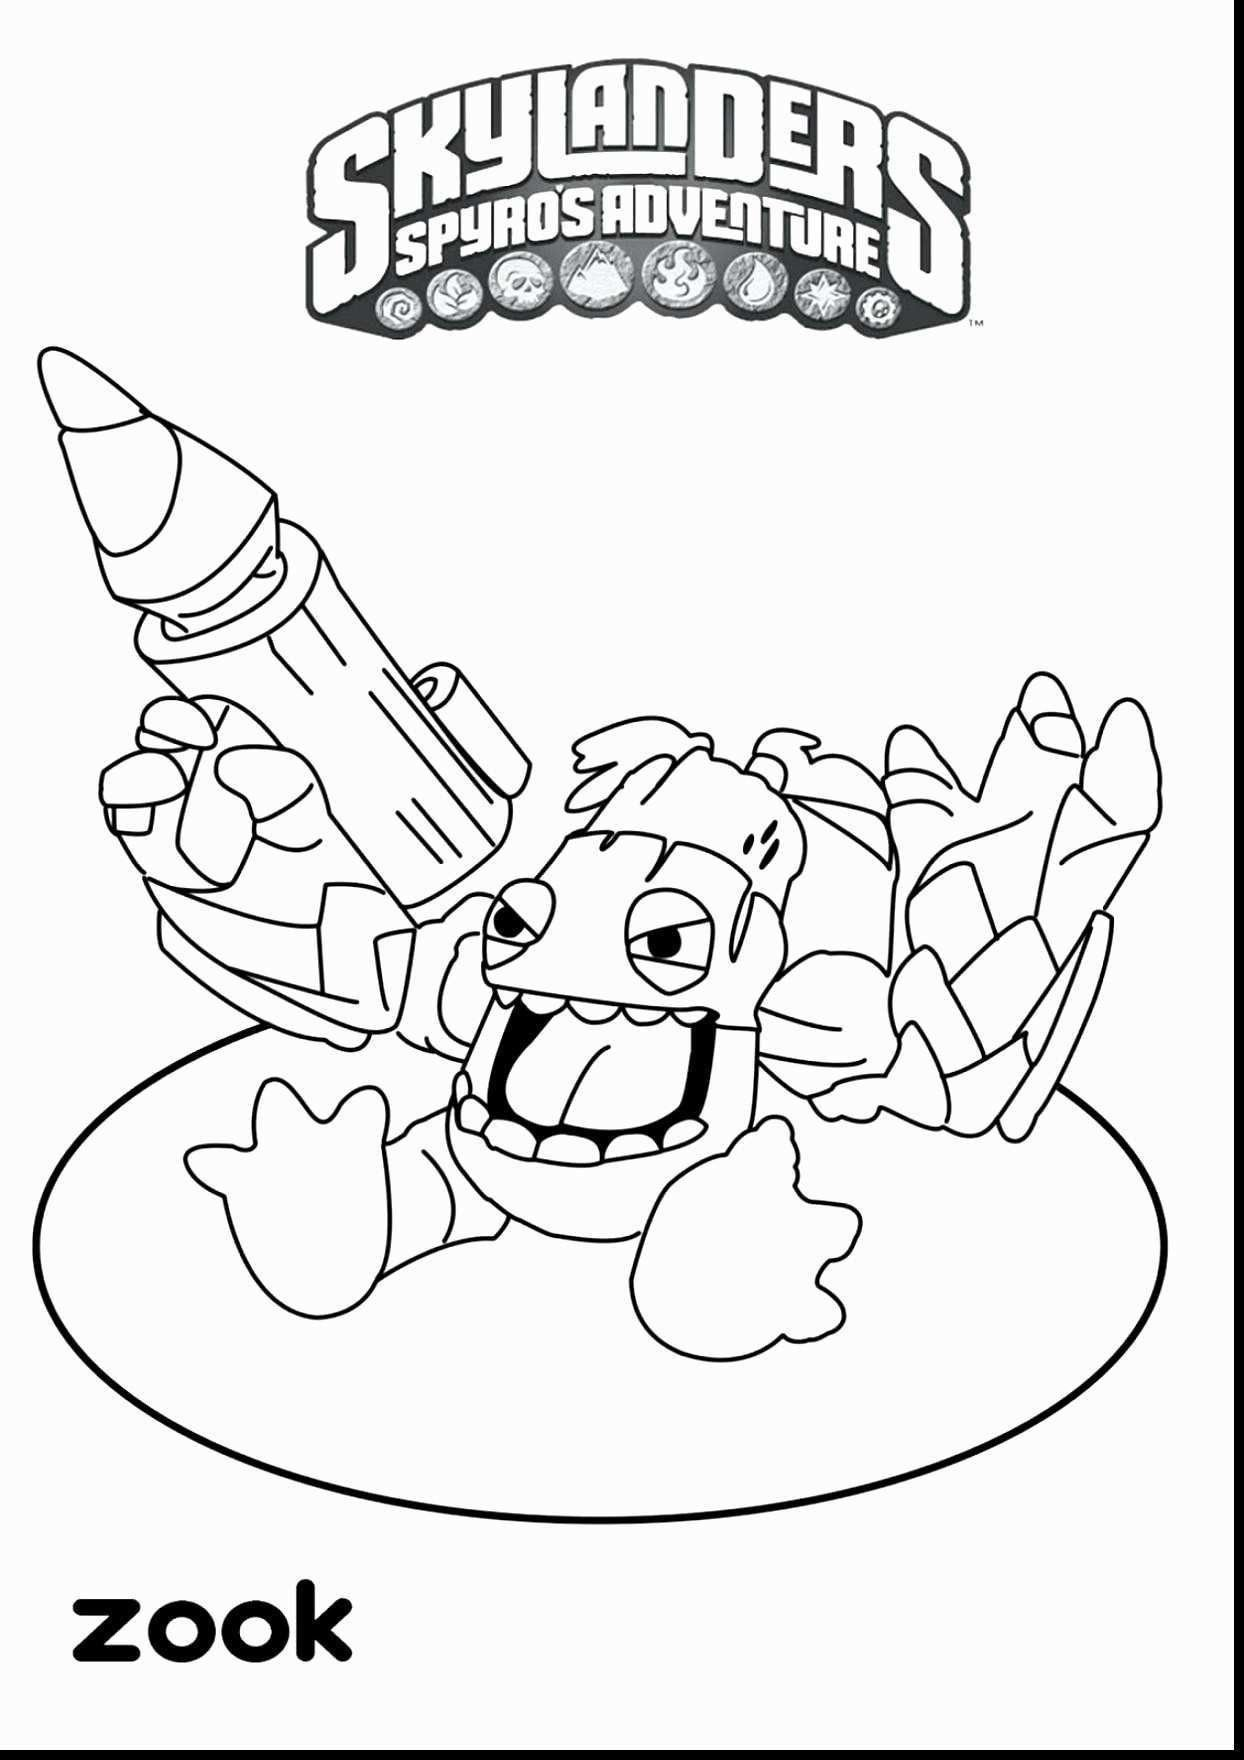 Nick Jr Coloring Pages Lovely Coloring Games Nick Jr Beautiful Nick Jr Coloring Pages Mermaid Coloring Pages Fall Coloring Pages Valentine Coloring Pages